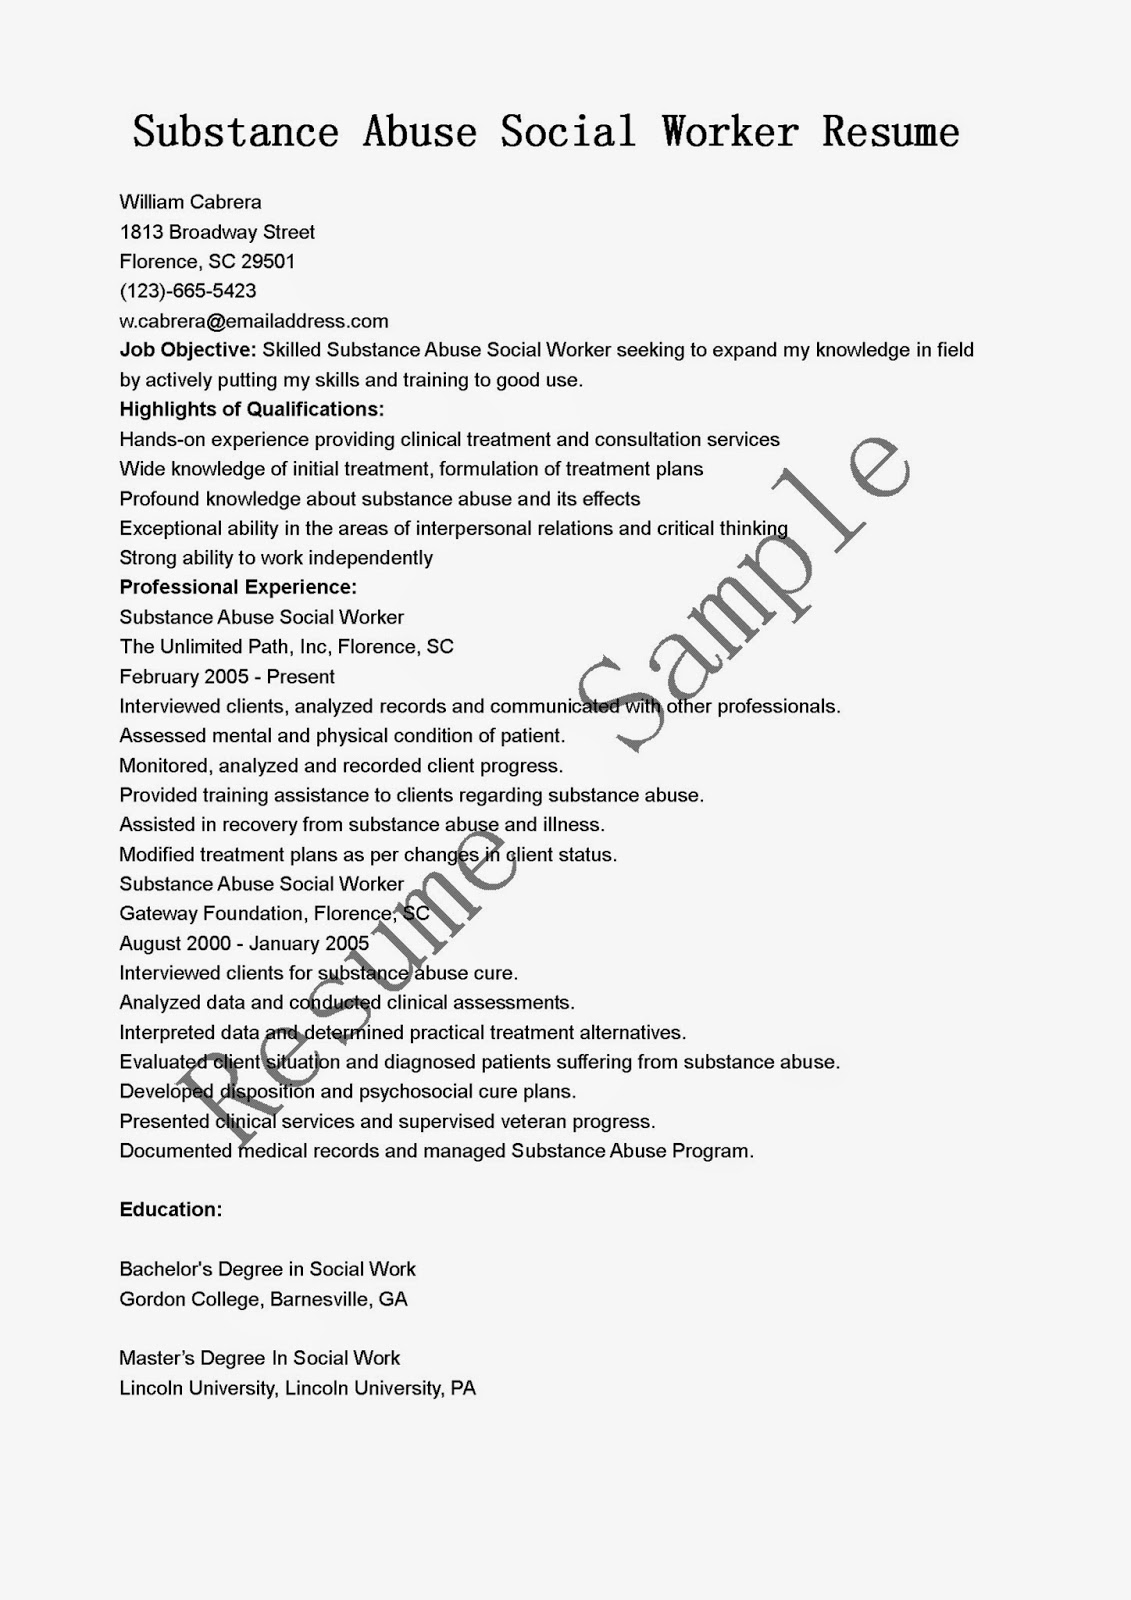 resume samples  substance abuse social worker resume sample